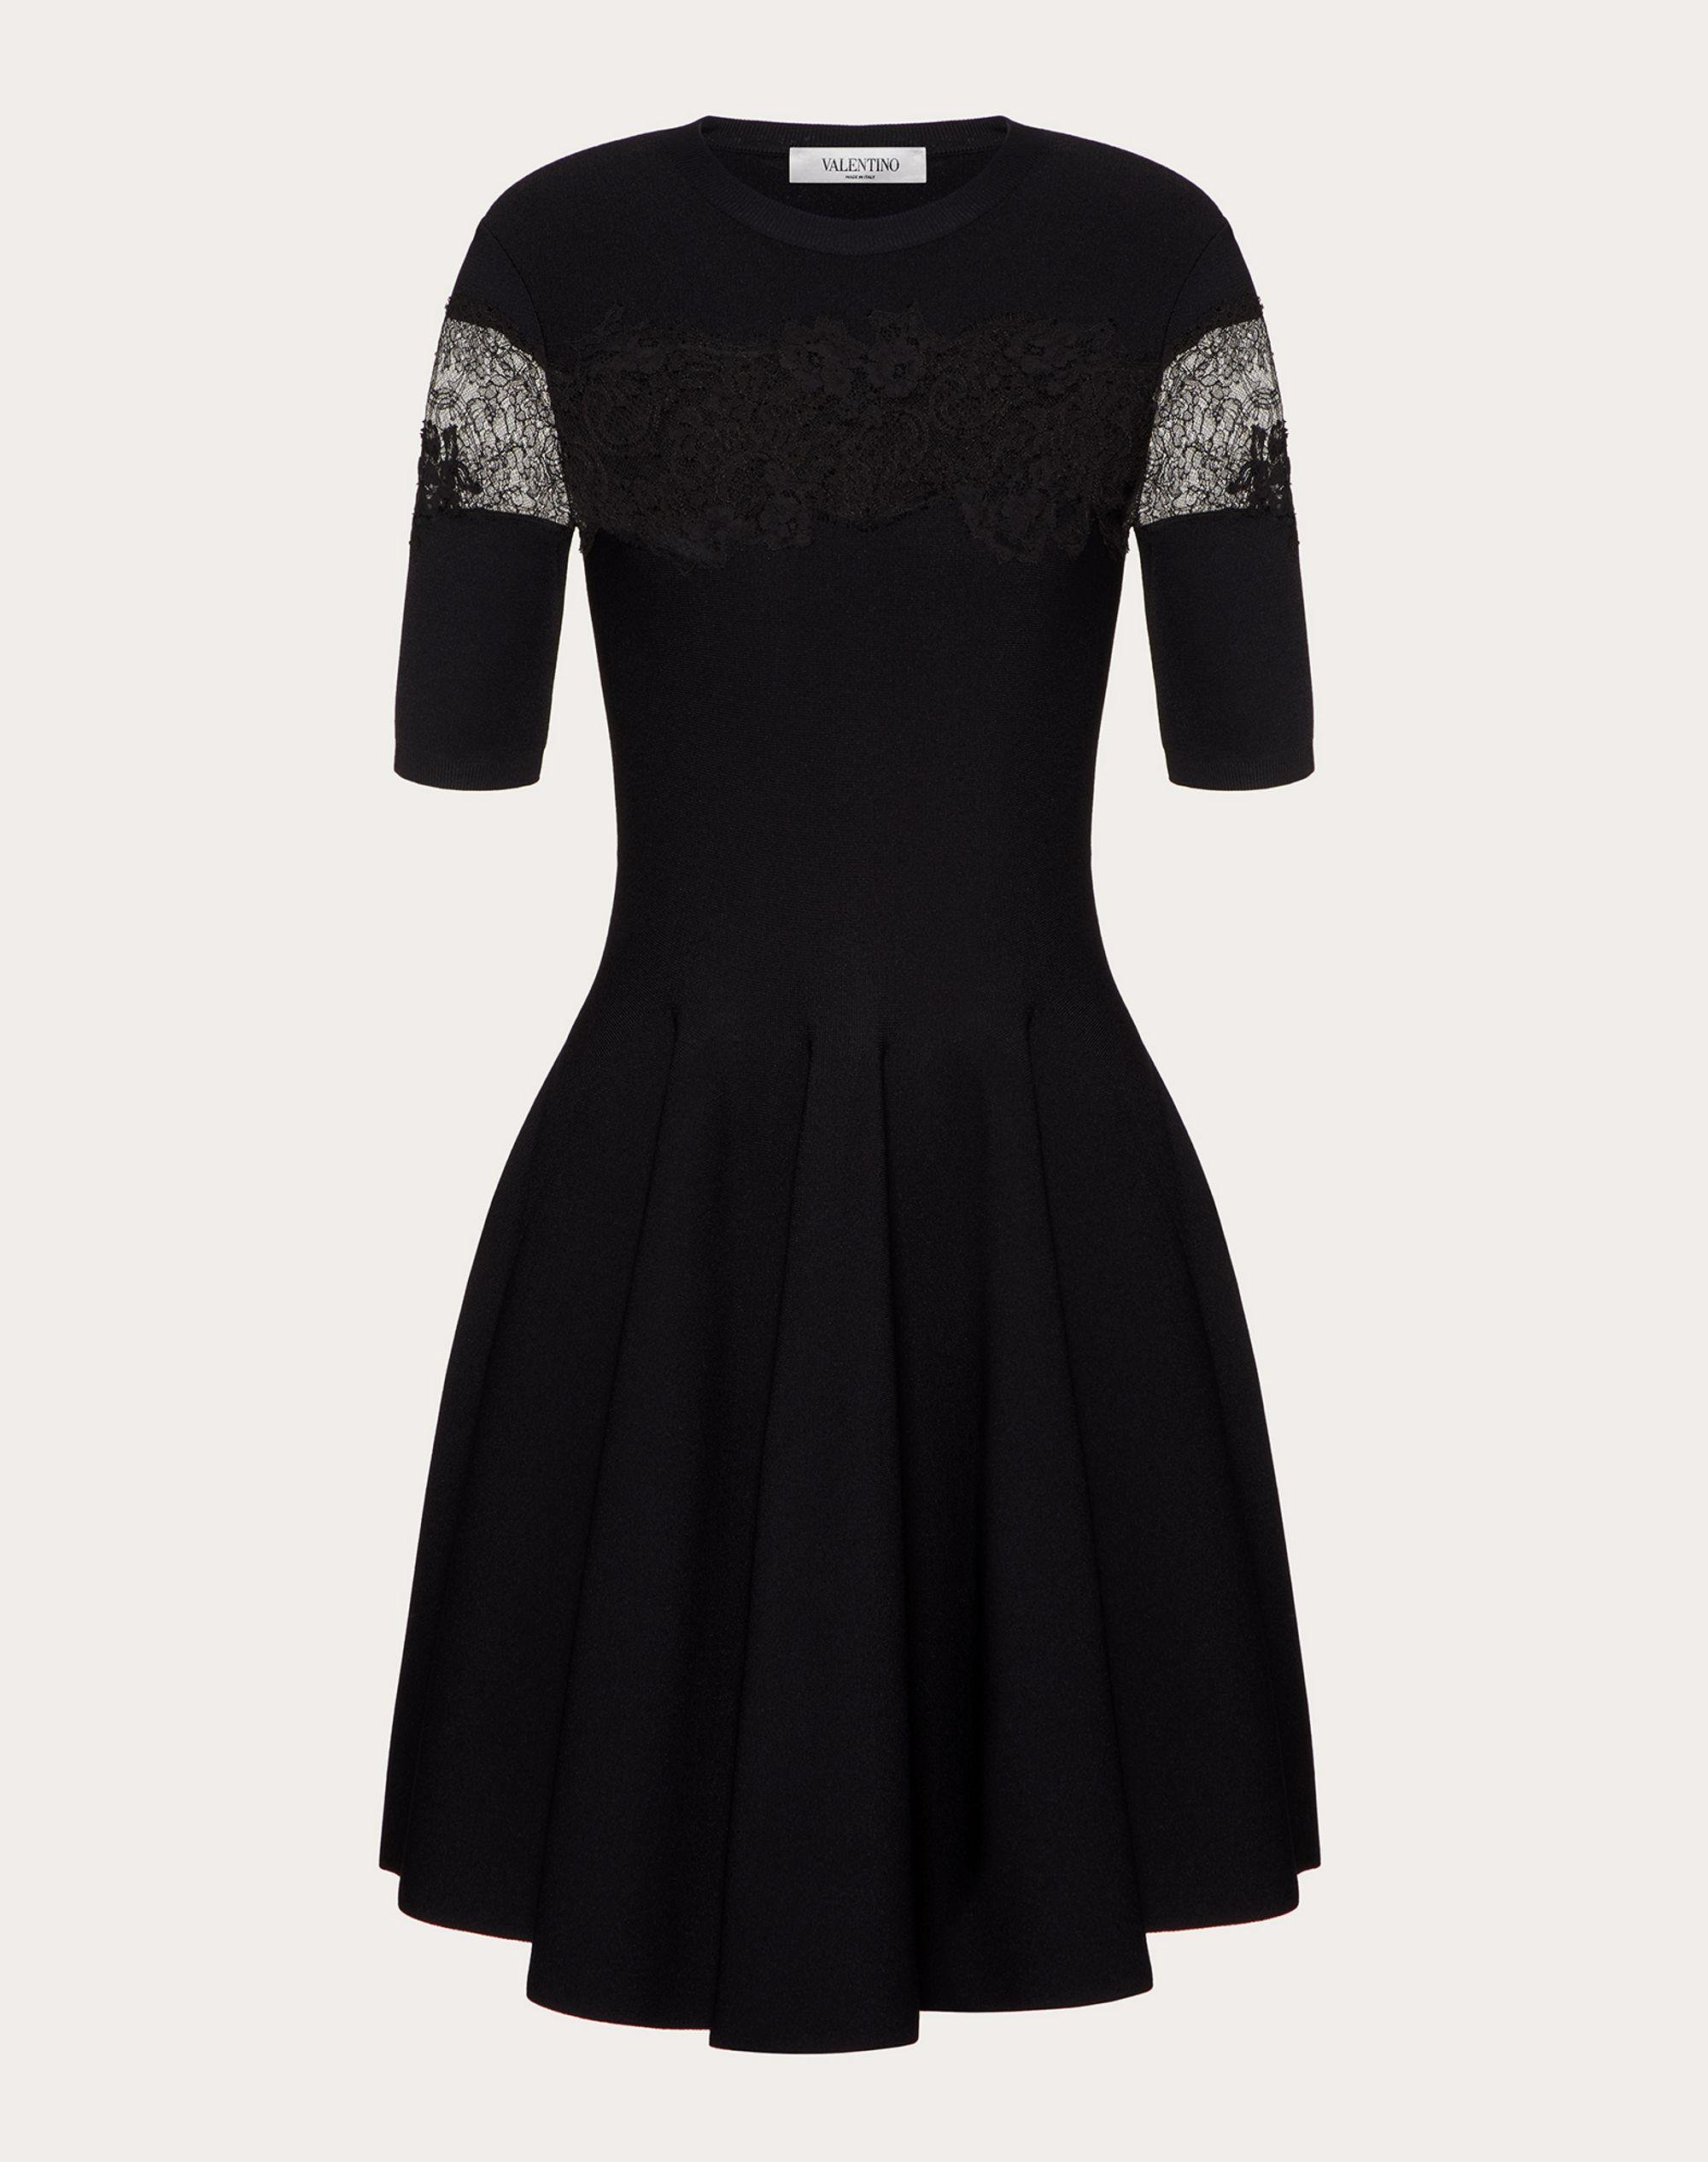 JERSEY DRESS IN STRETCHED VISCOSE AND LACE 4